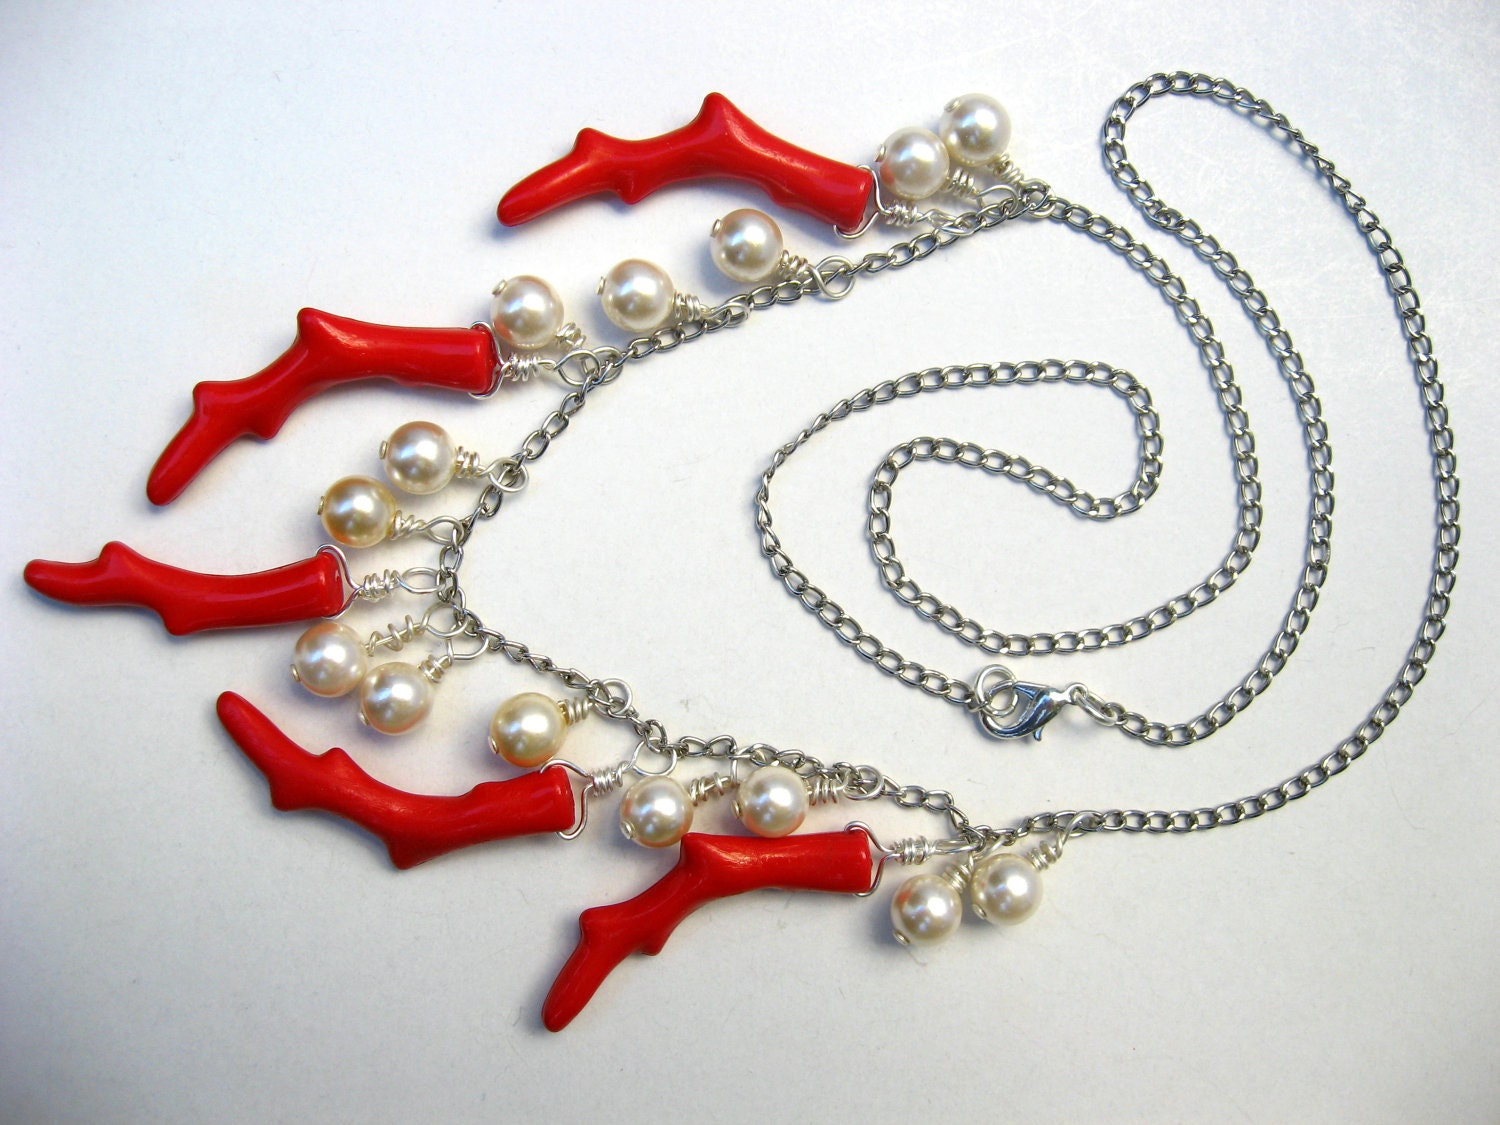 Coral Branch Necklace w/ Pearl Charm, Chain Bead Necklace, Wire Wrap, Playful Necklace